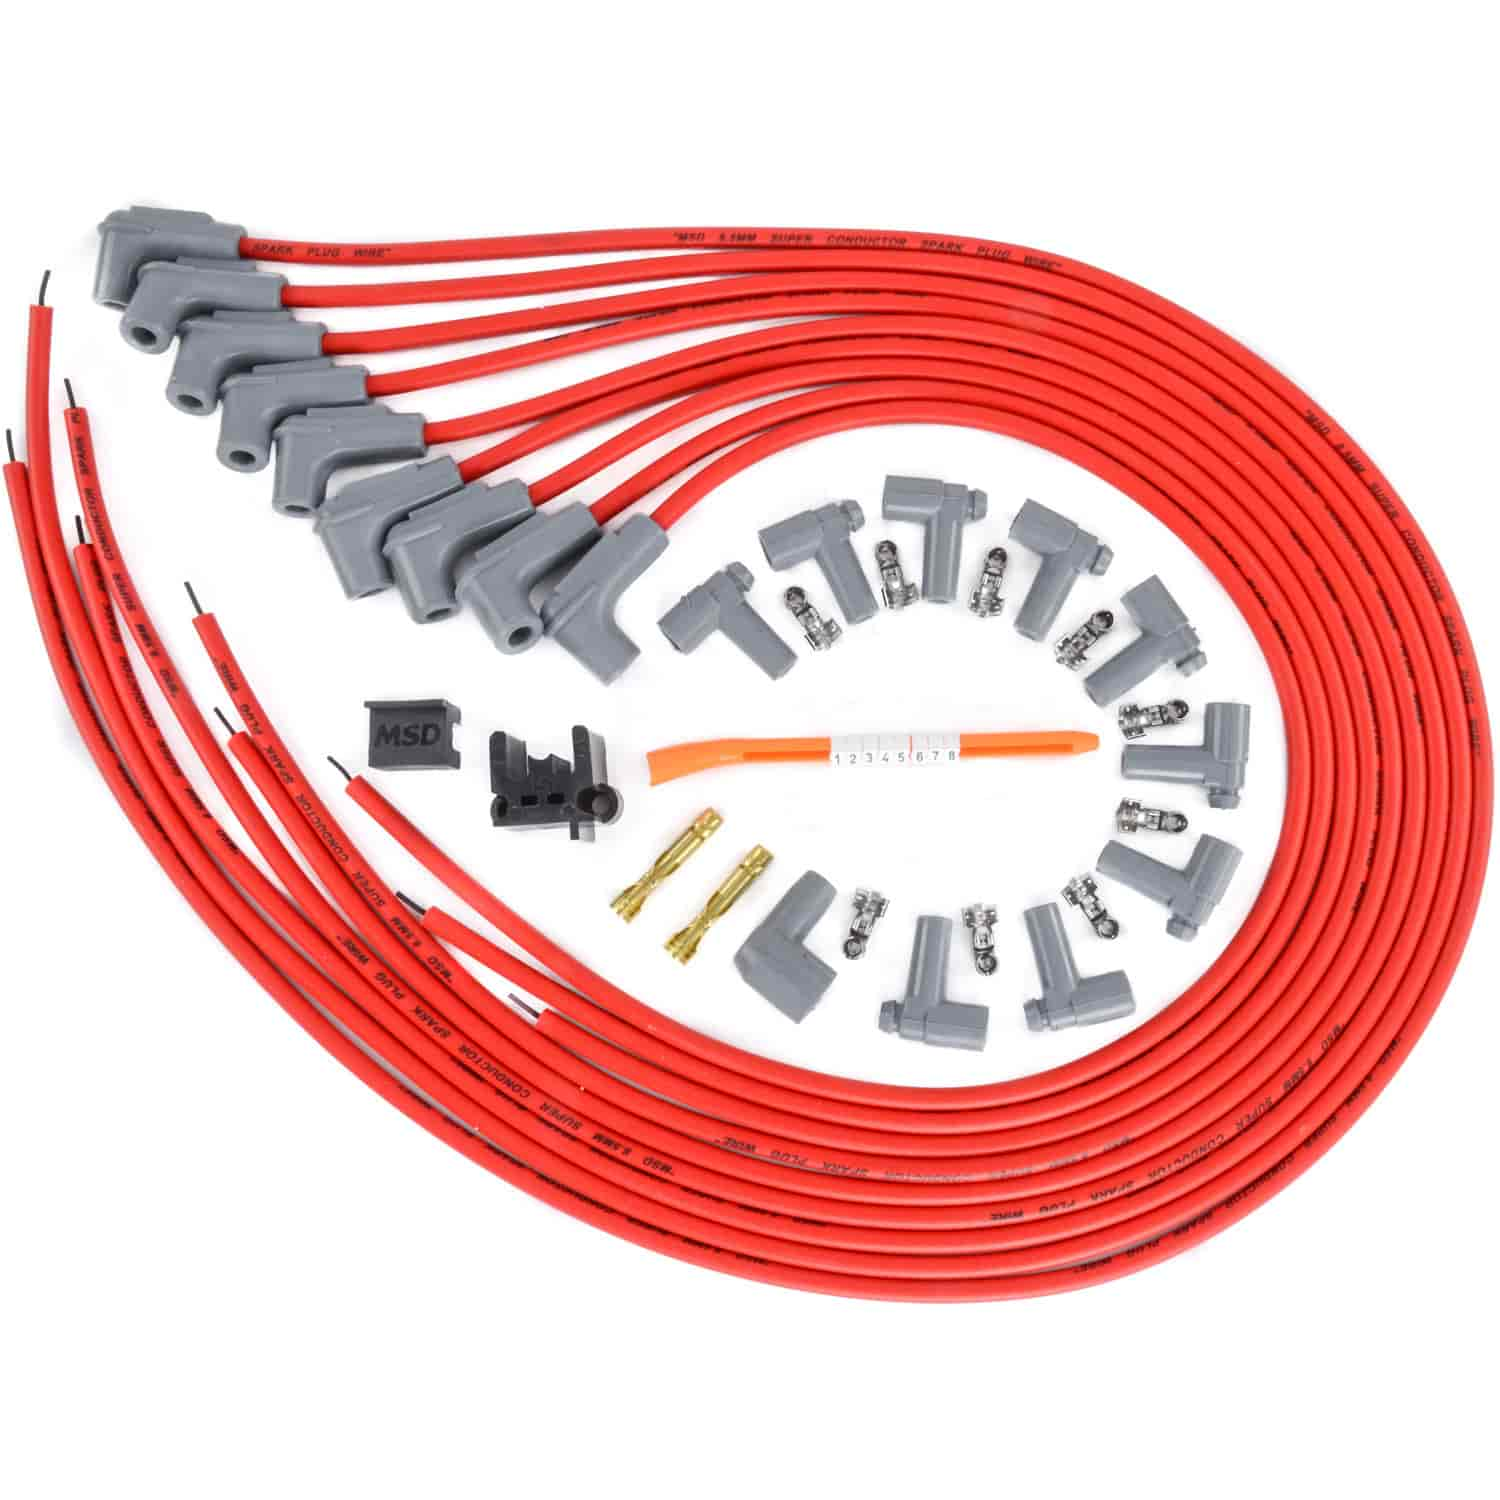 Msd Ignition 31229 Red Universal 85mm Spark Plug Wire Set 8 Ford 302 Wiring Diagram